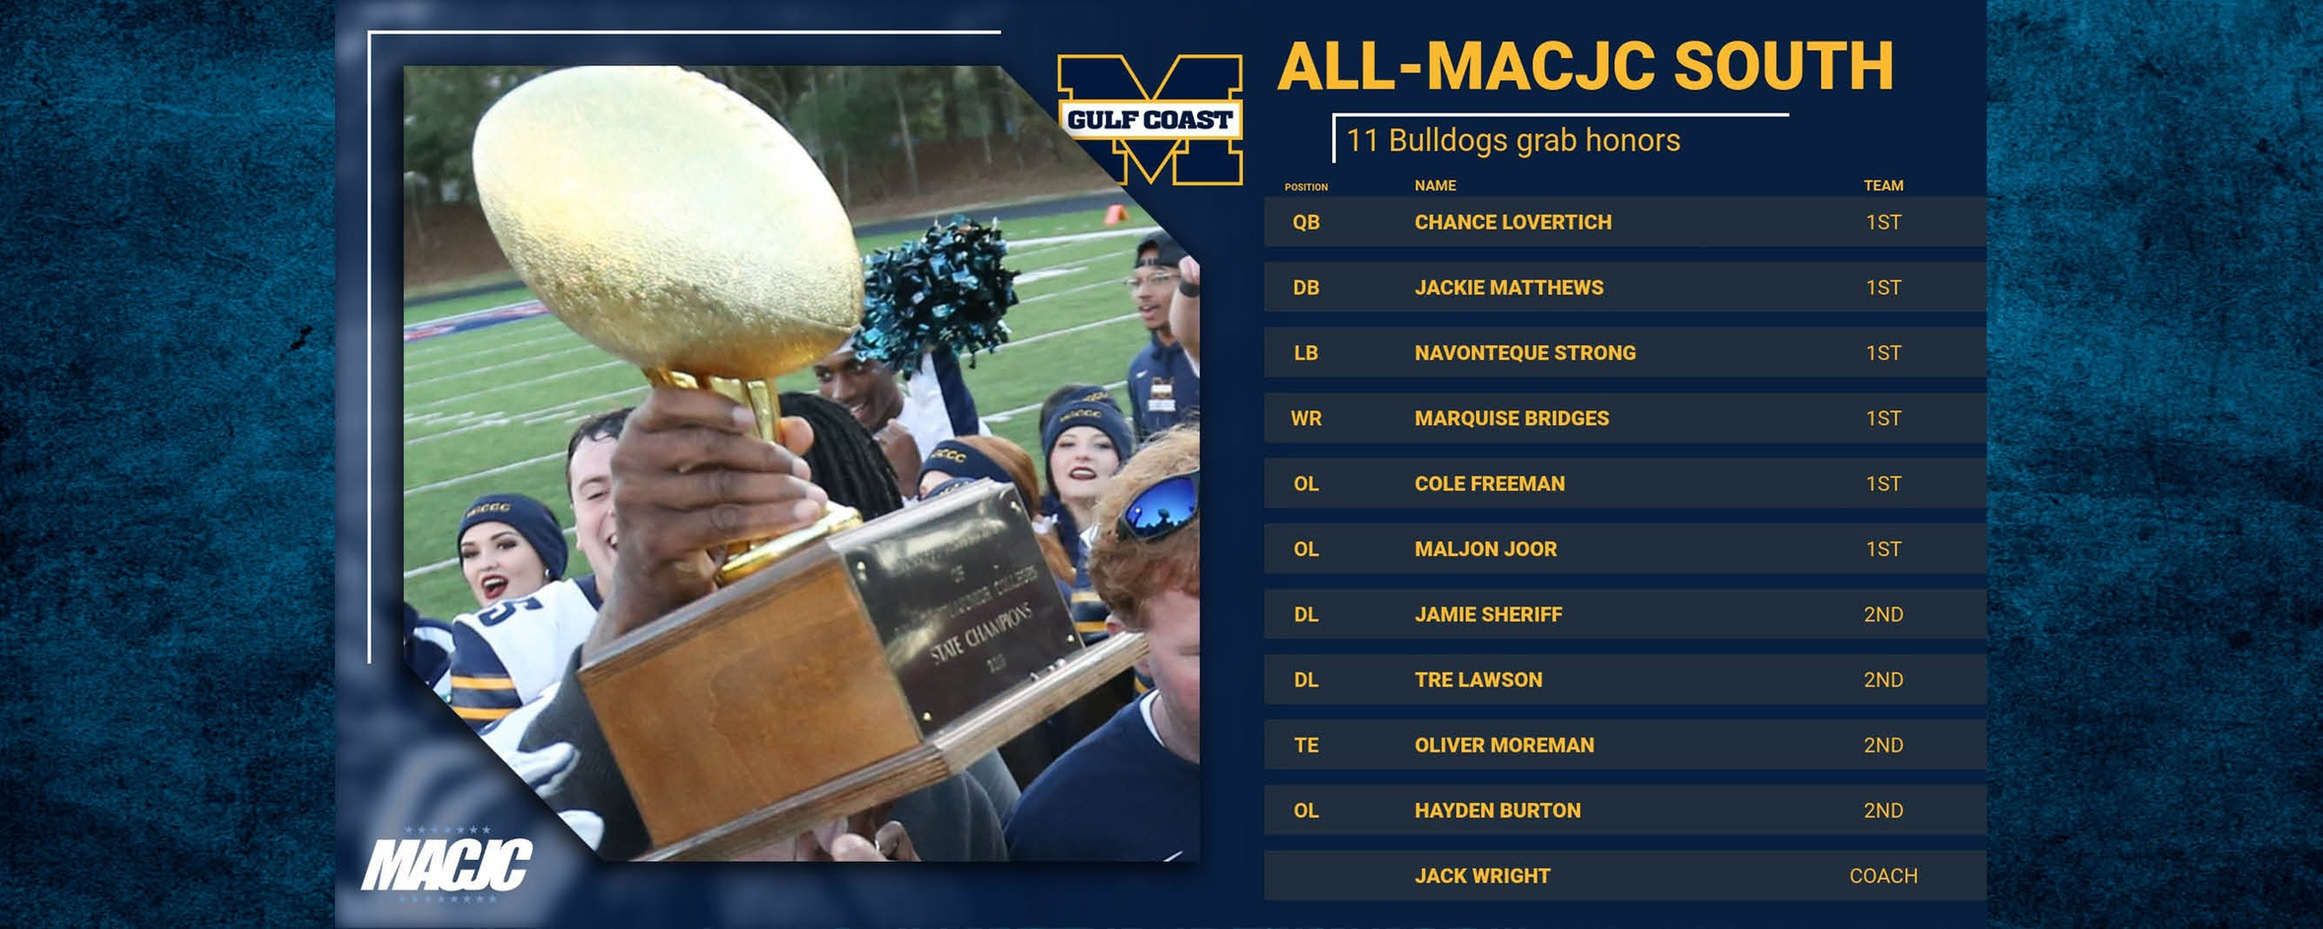 11 pick up All-MACJC South honors